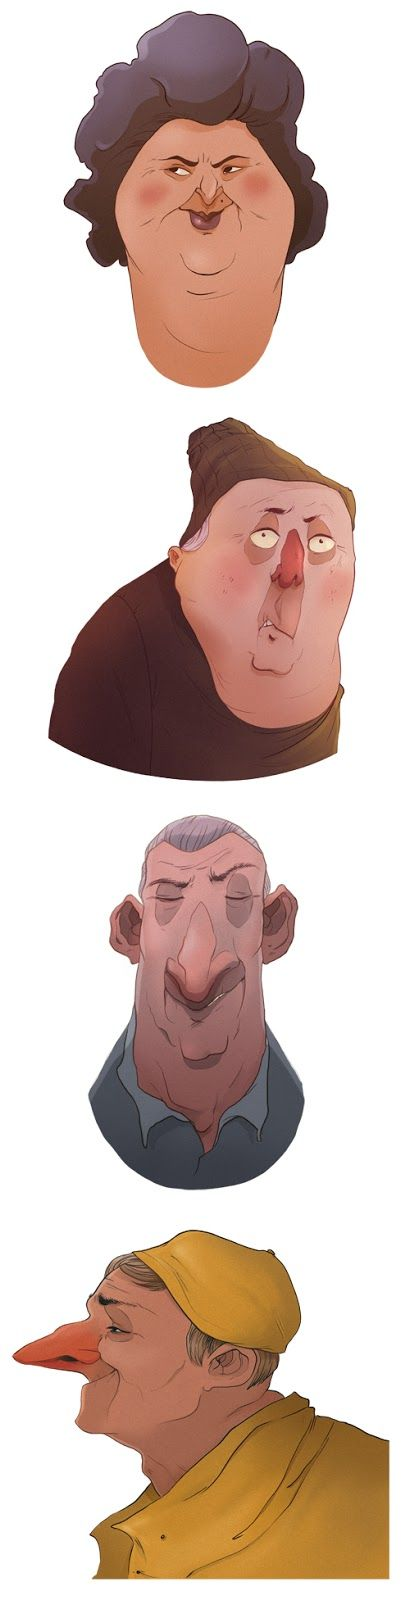 Faces - Character design